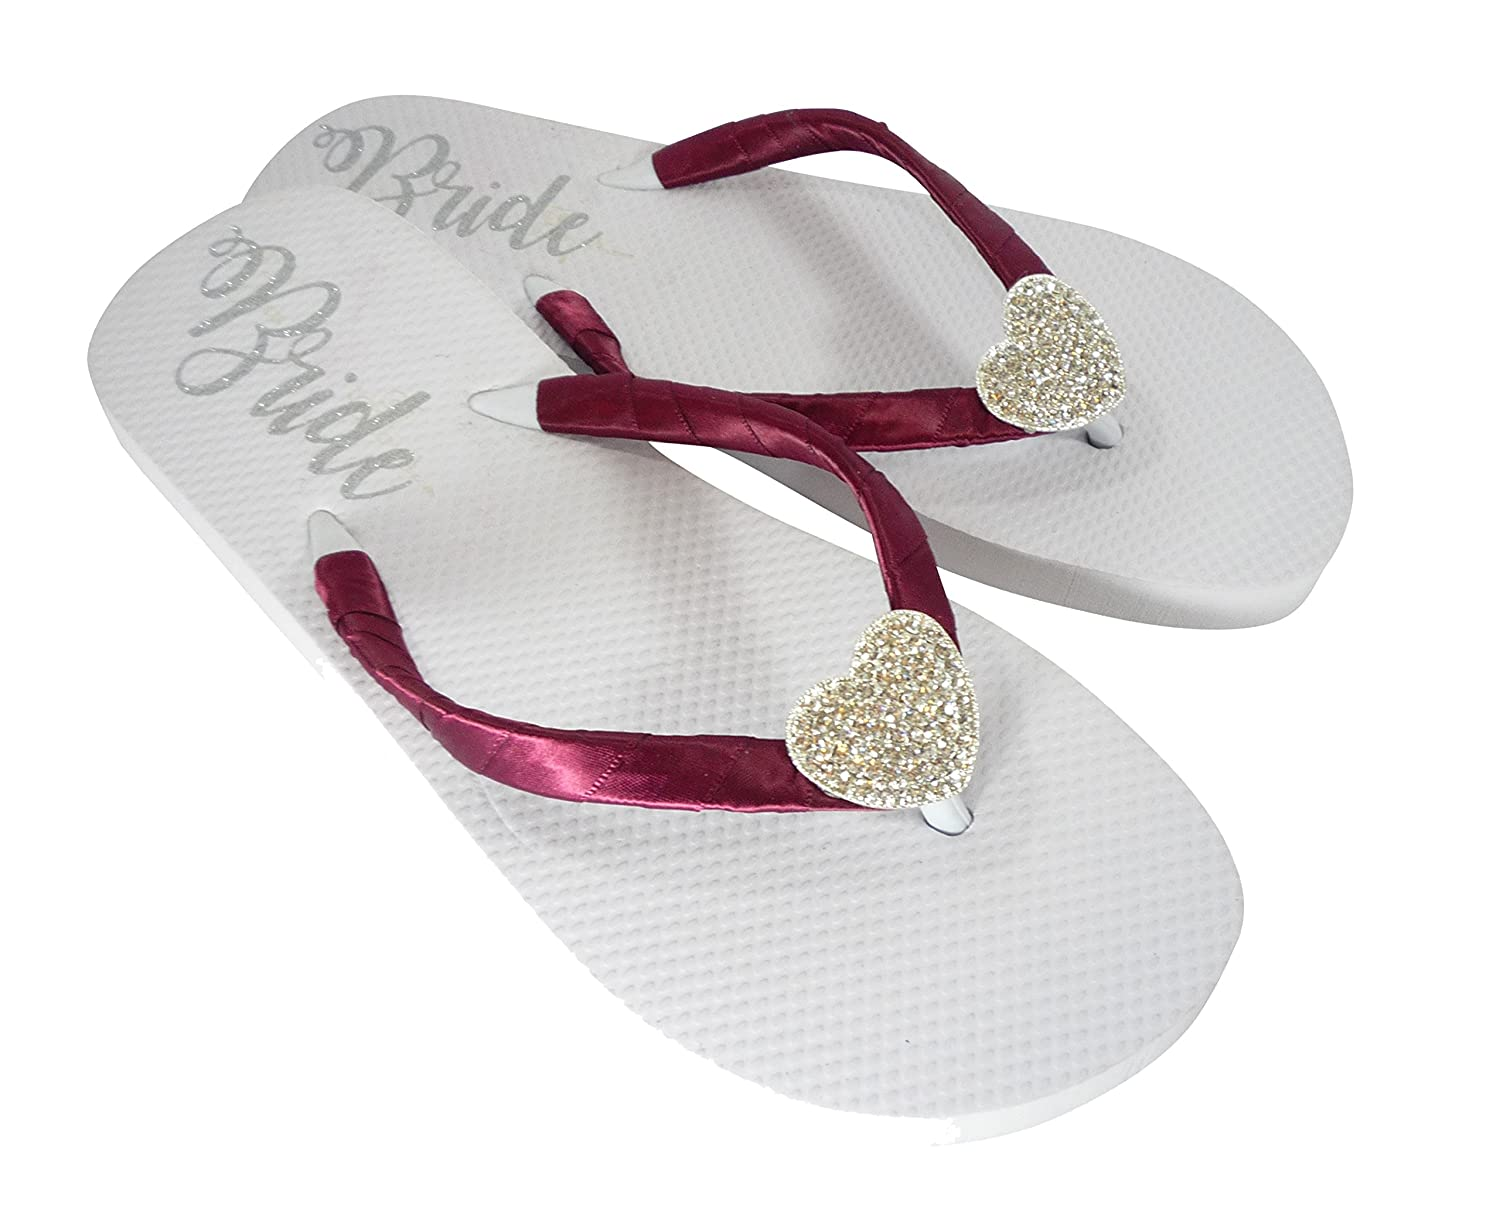 dec1f3ae466e Amazon.com  Wine Red   Silver Heart Rhinestone Bride Flip Flops on White  Flat Sandals